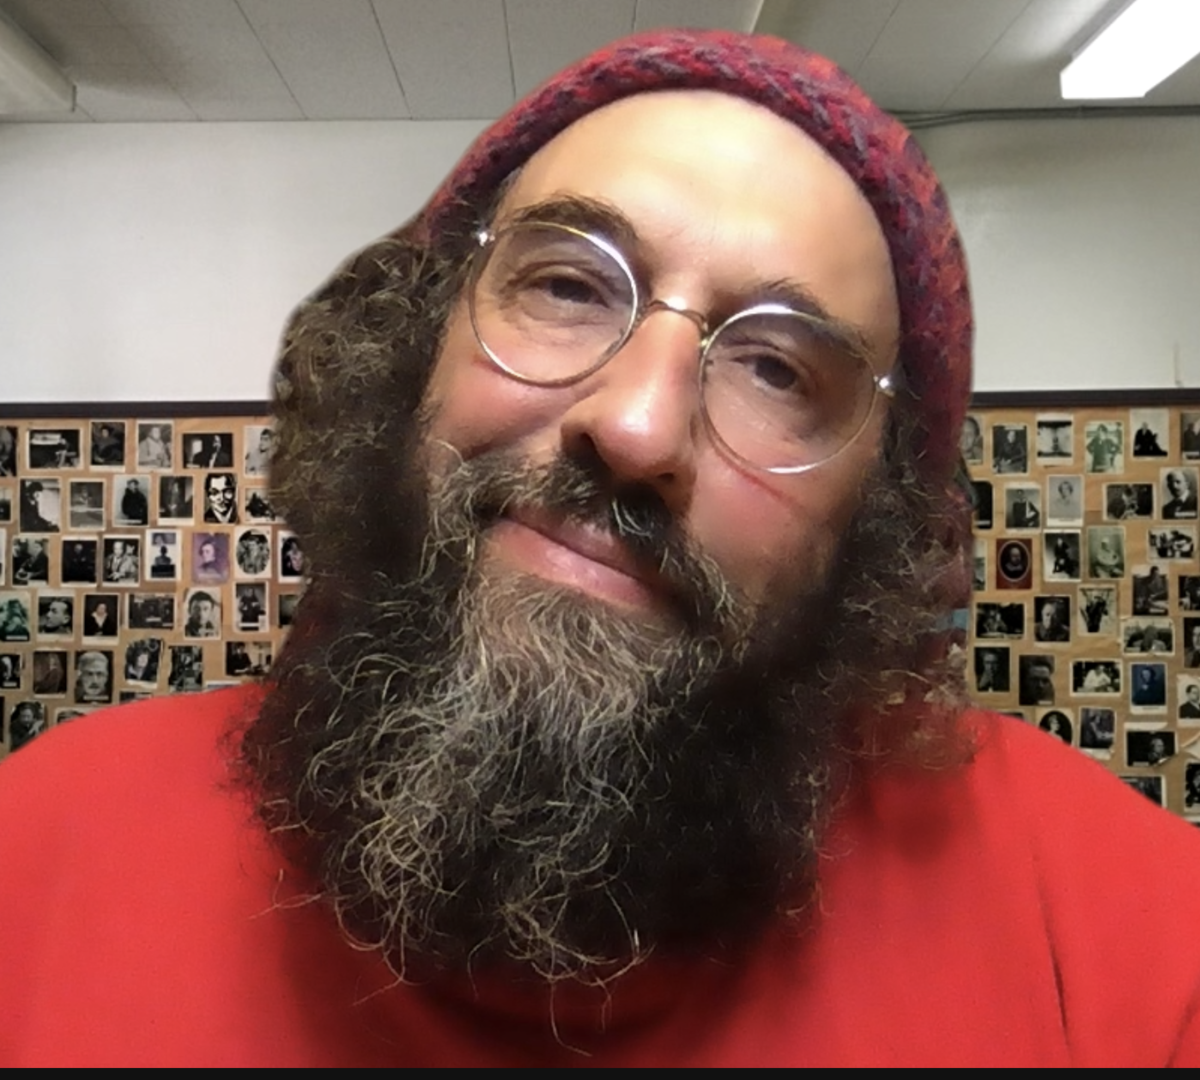 LAUSD Teacher Barry Smolin Accused Of Grooming, Sexually Abusing Teen Girl 4/30/21